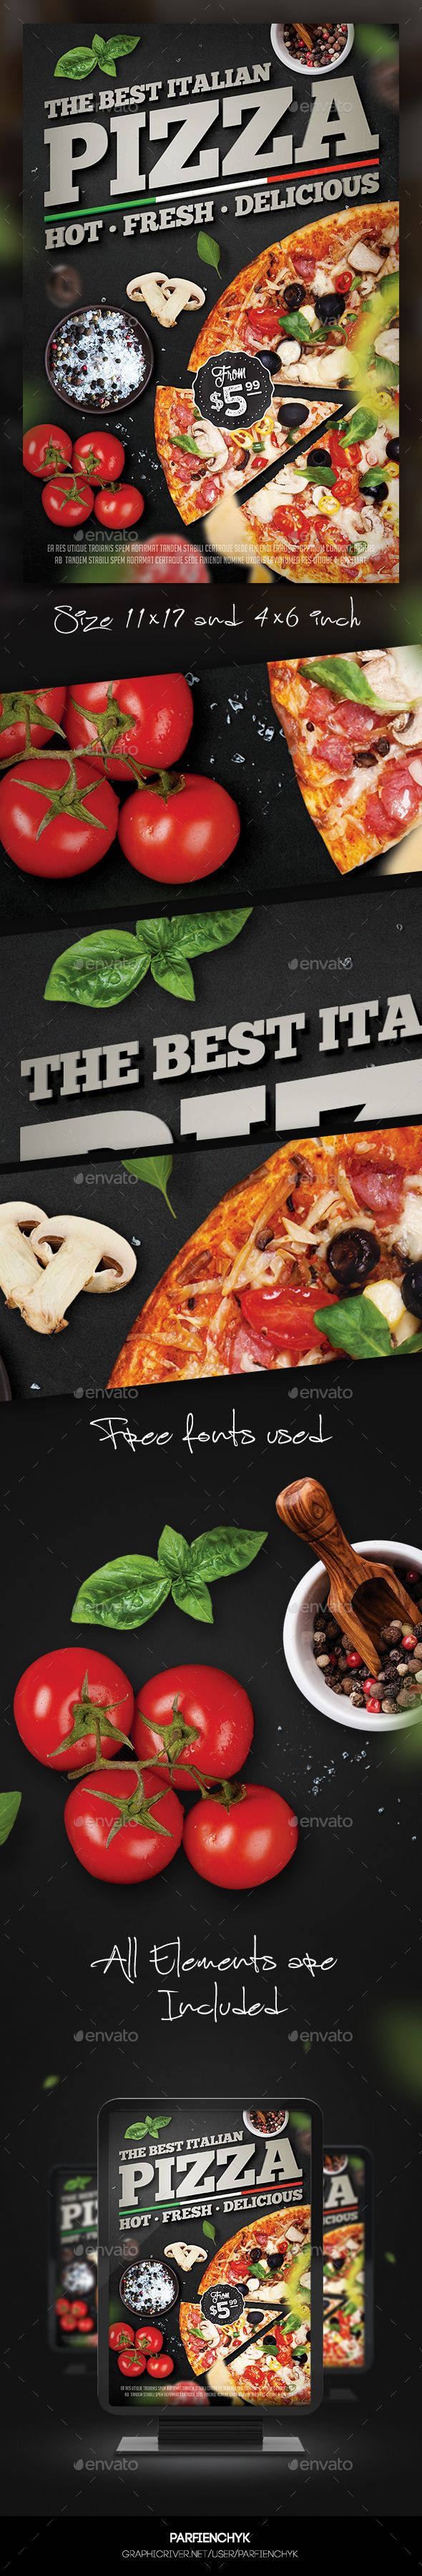 Pizza Flyer Template PSD #design Download: http://graphicriver.net/item/pizza-flyer-template/14118823?ref=ksioks